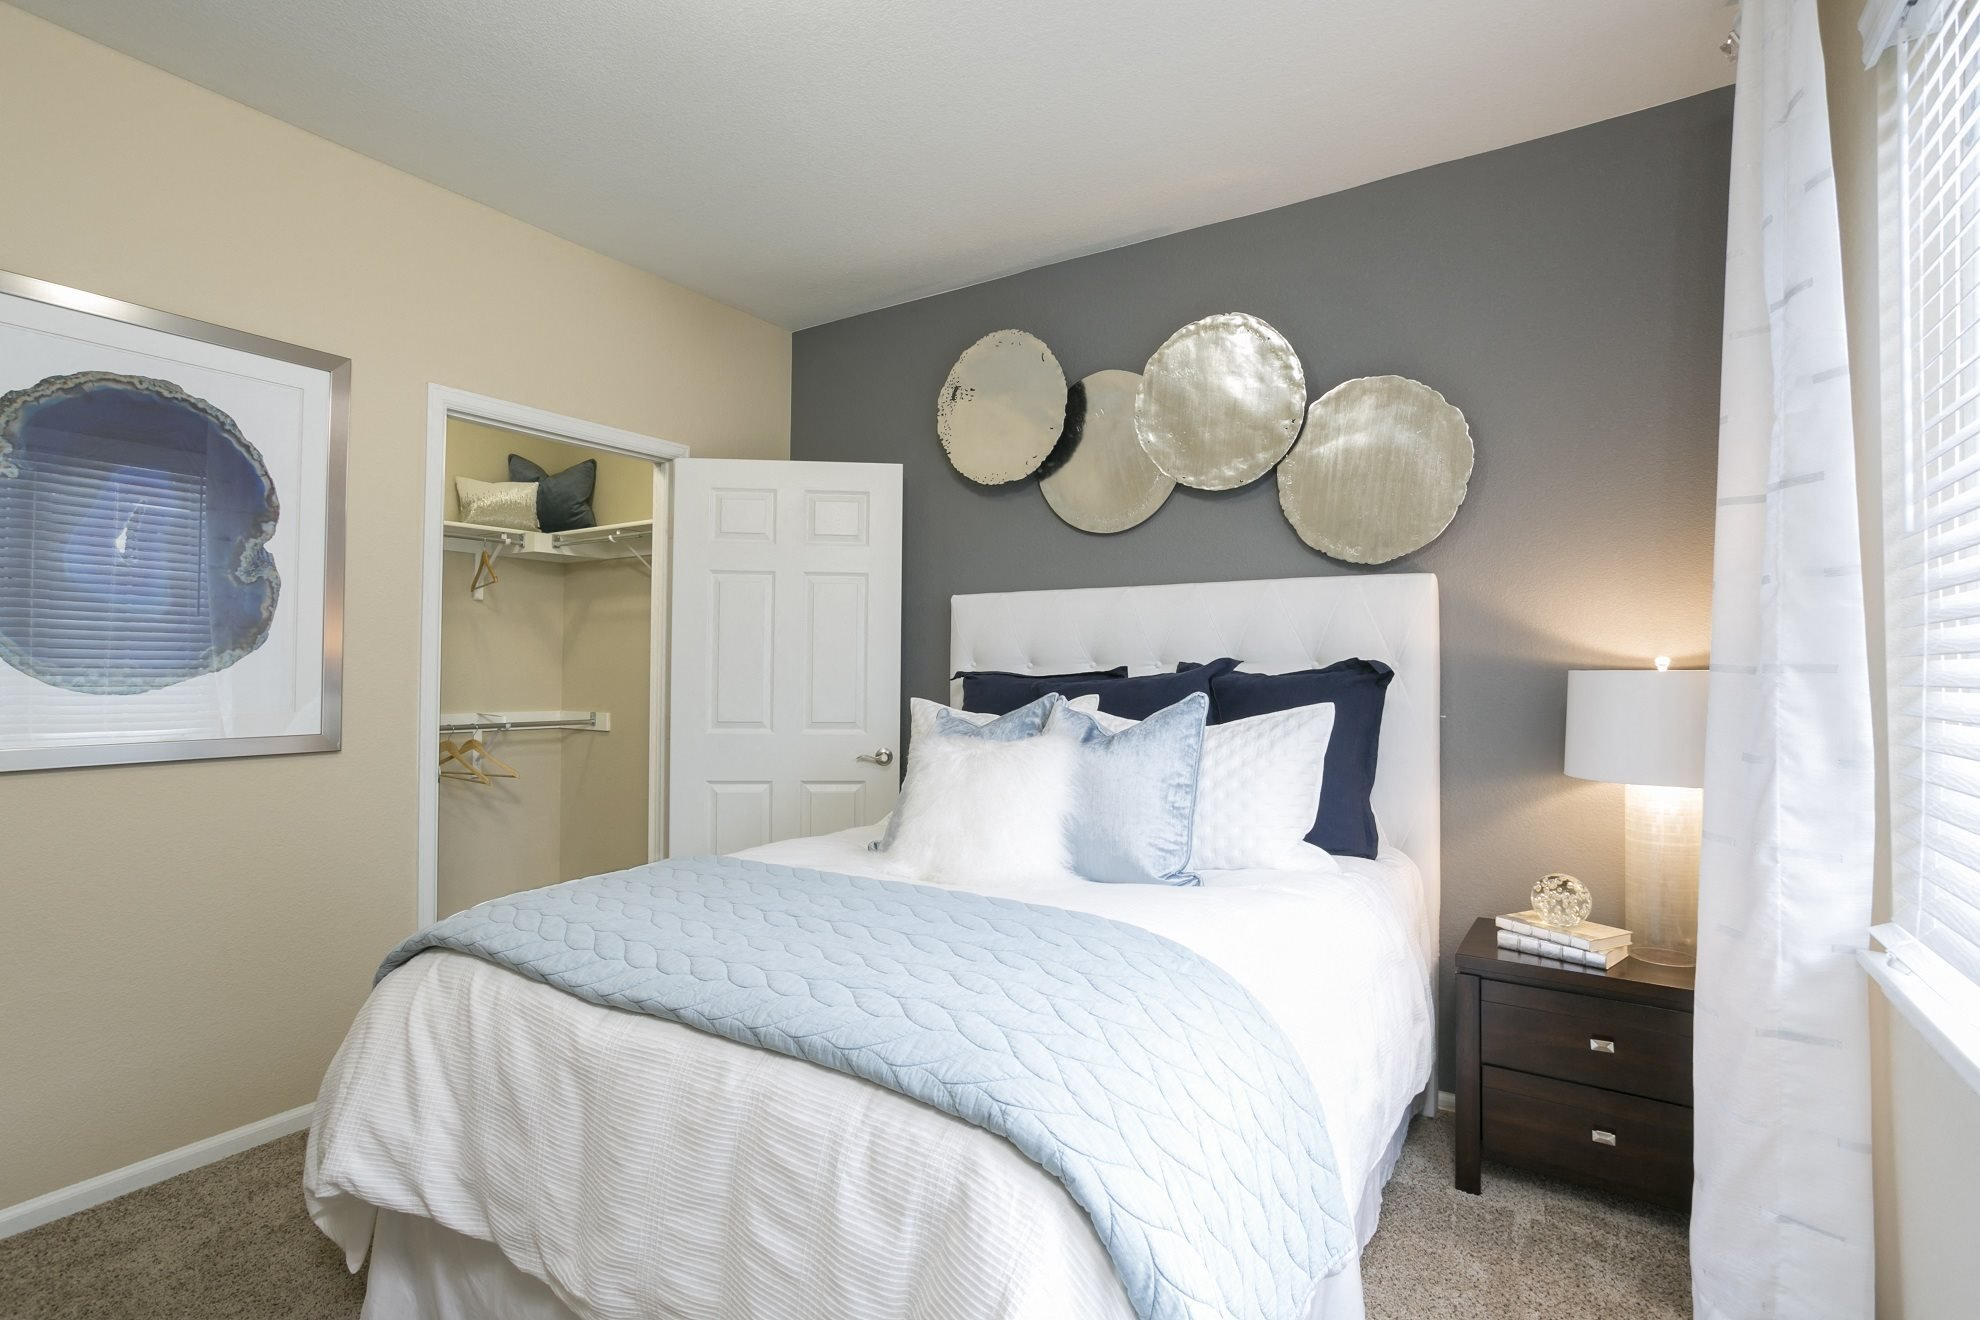 Photos of crestone apartments in aurora co photos - One bedroom apartments aurora co ...